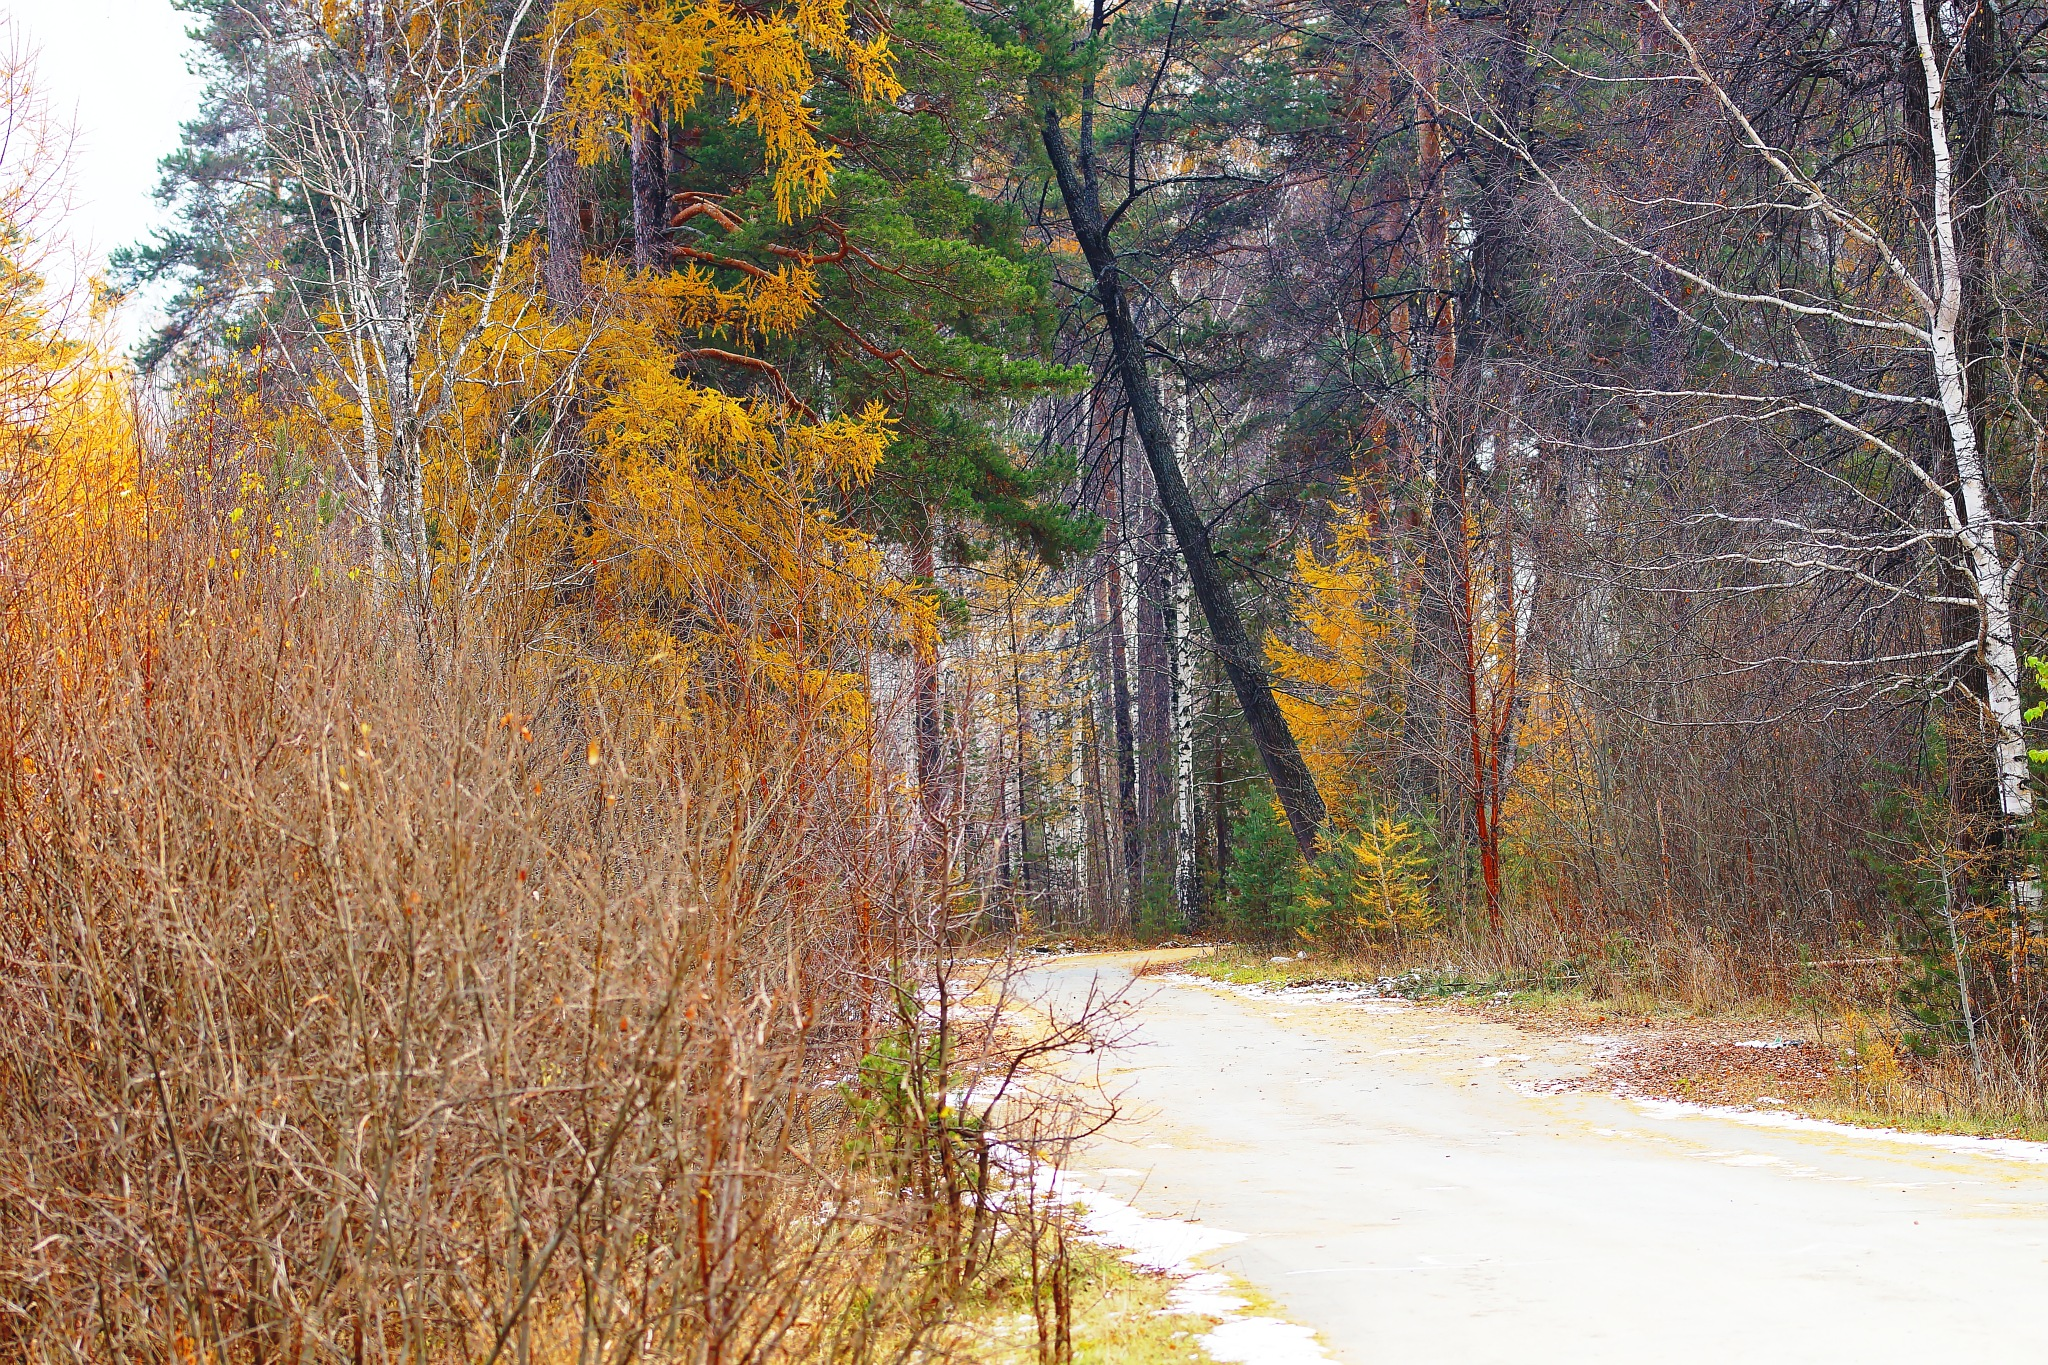 Road to fall by sergey.parfeniuk